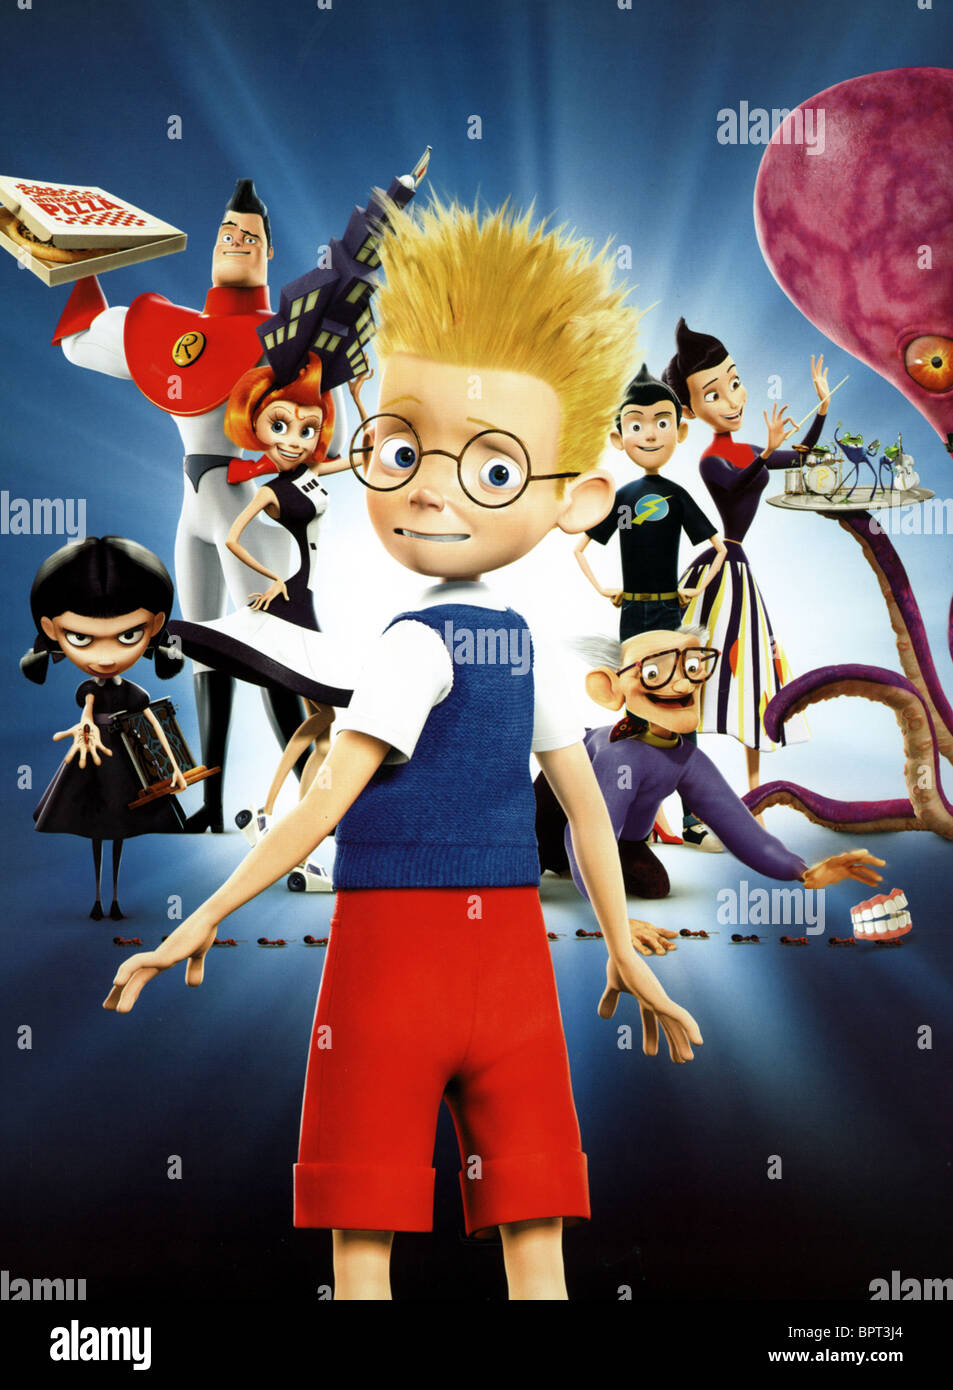 THE ROBINSONS MEET THE ROBINSONS (2007) - Stock Image